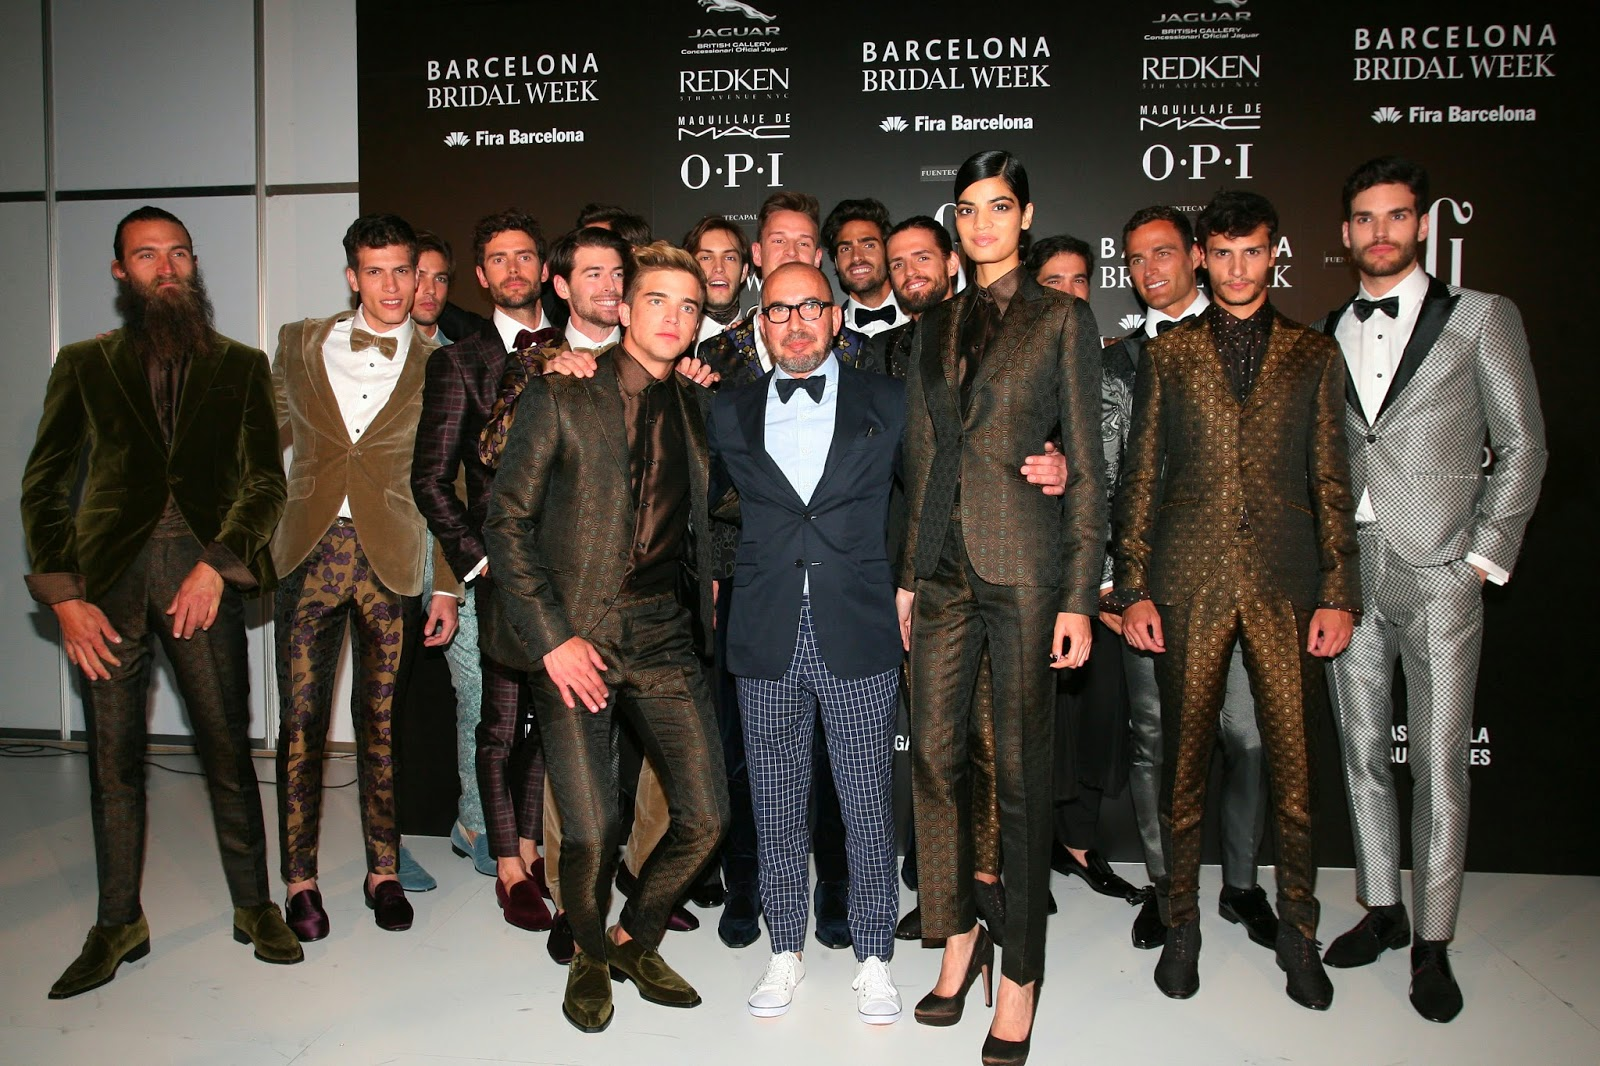 Especial Novios, moda ceremonia, novios, Novios 2015, Suits and Shirts, Zero Protocol,